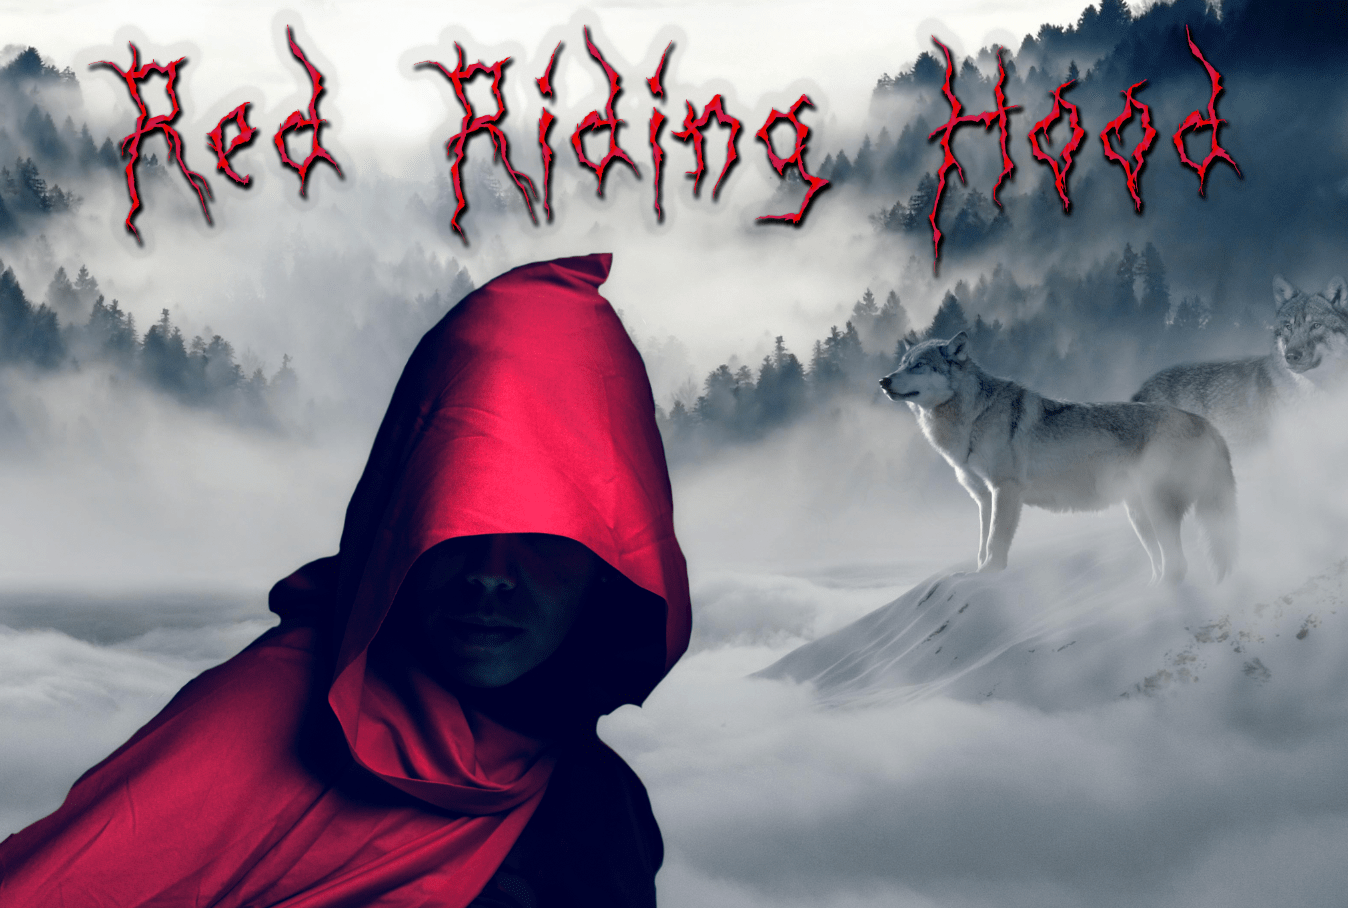 Red+Riding+Hood+1.png